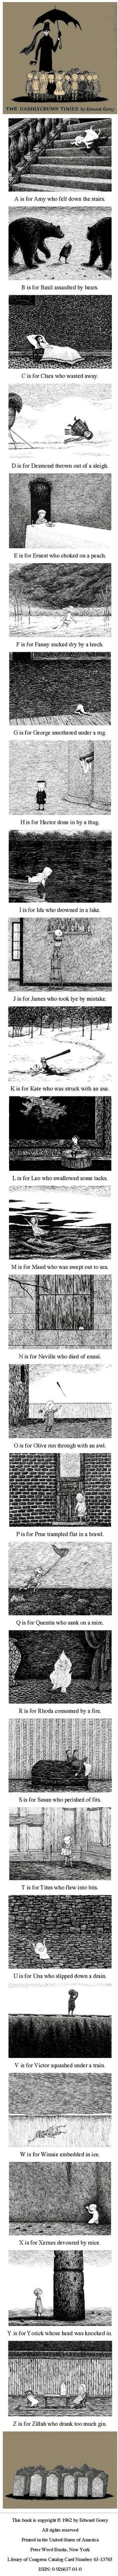 "The Gashlycrumb Tinies, by Edward Gorey (pub.1963) ~ One of Gorey's best-known books, it has been described as a ""sarcastic rebellion against a view of childhood that is sunny, idyllic, and instructive"". The morbid humor of the book comes in part from the mundane ways in which children die. Far from illustrating the dramatic and fantastical childhood nightmares, these scenarios instead poke fun at the banal paranoias that come as a part of parenting. #art #illustration"